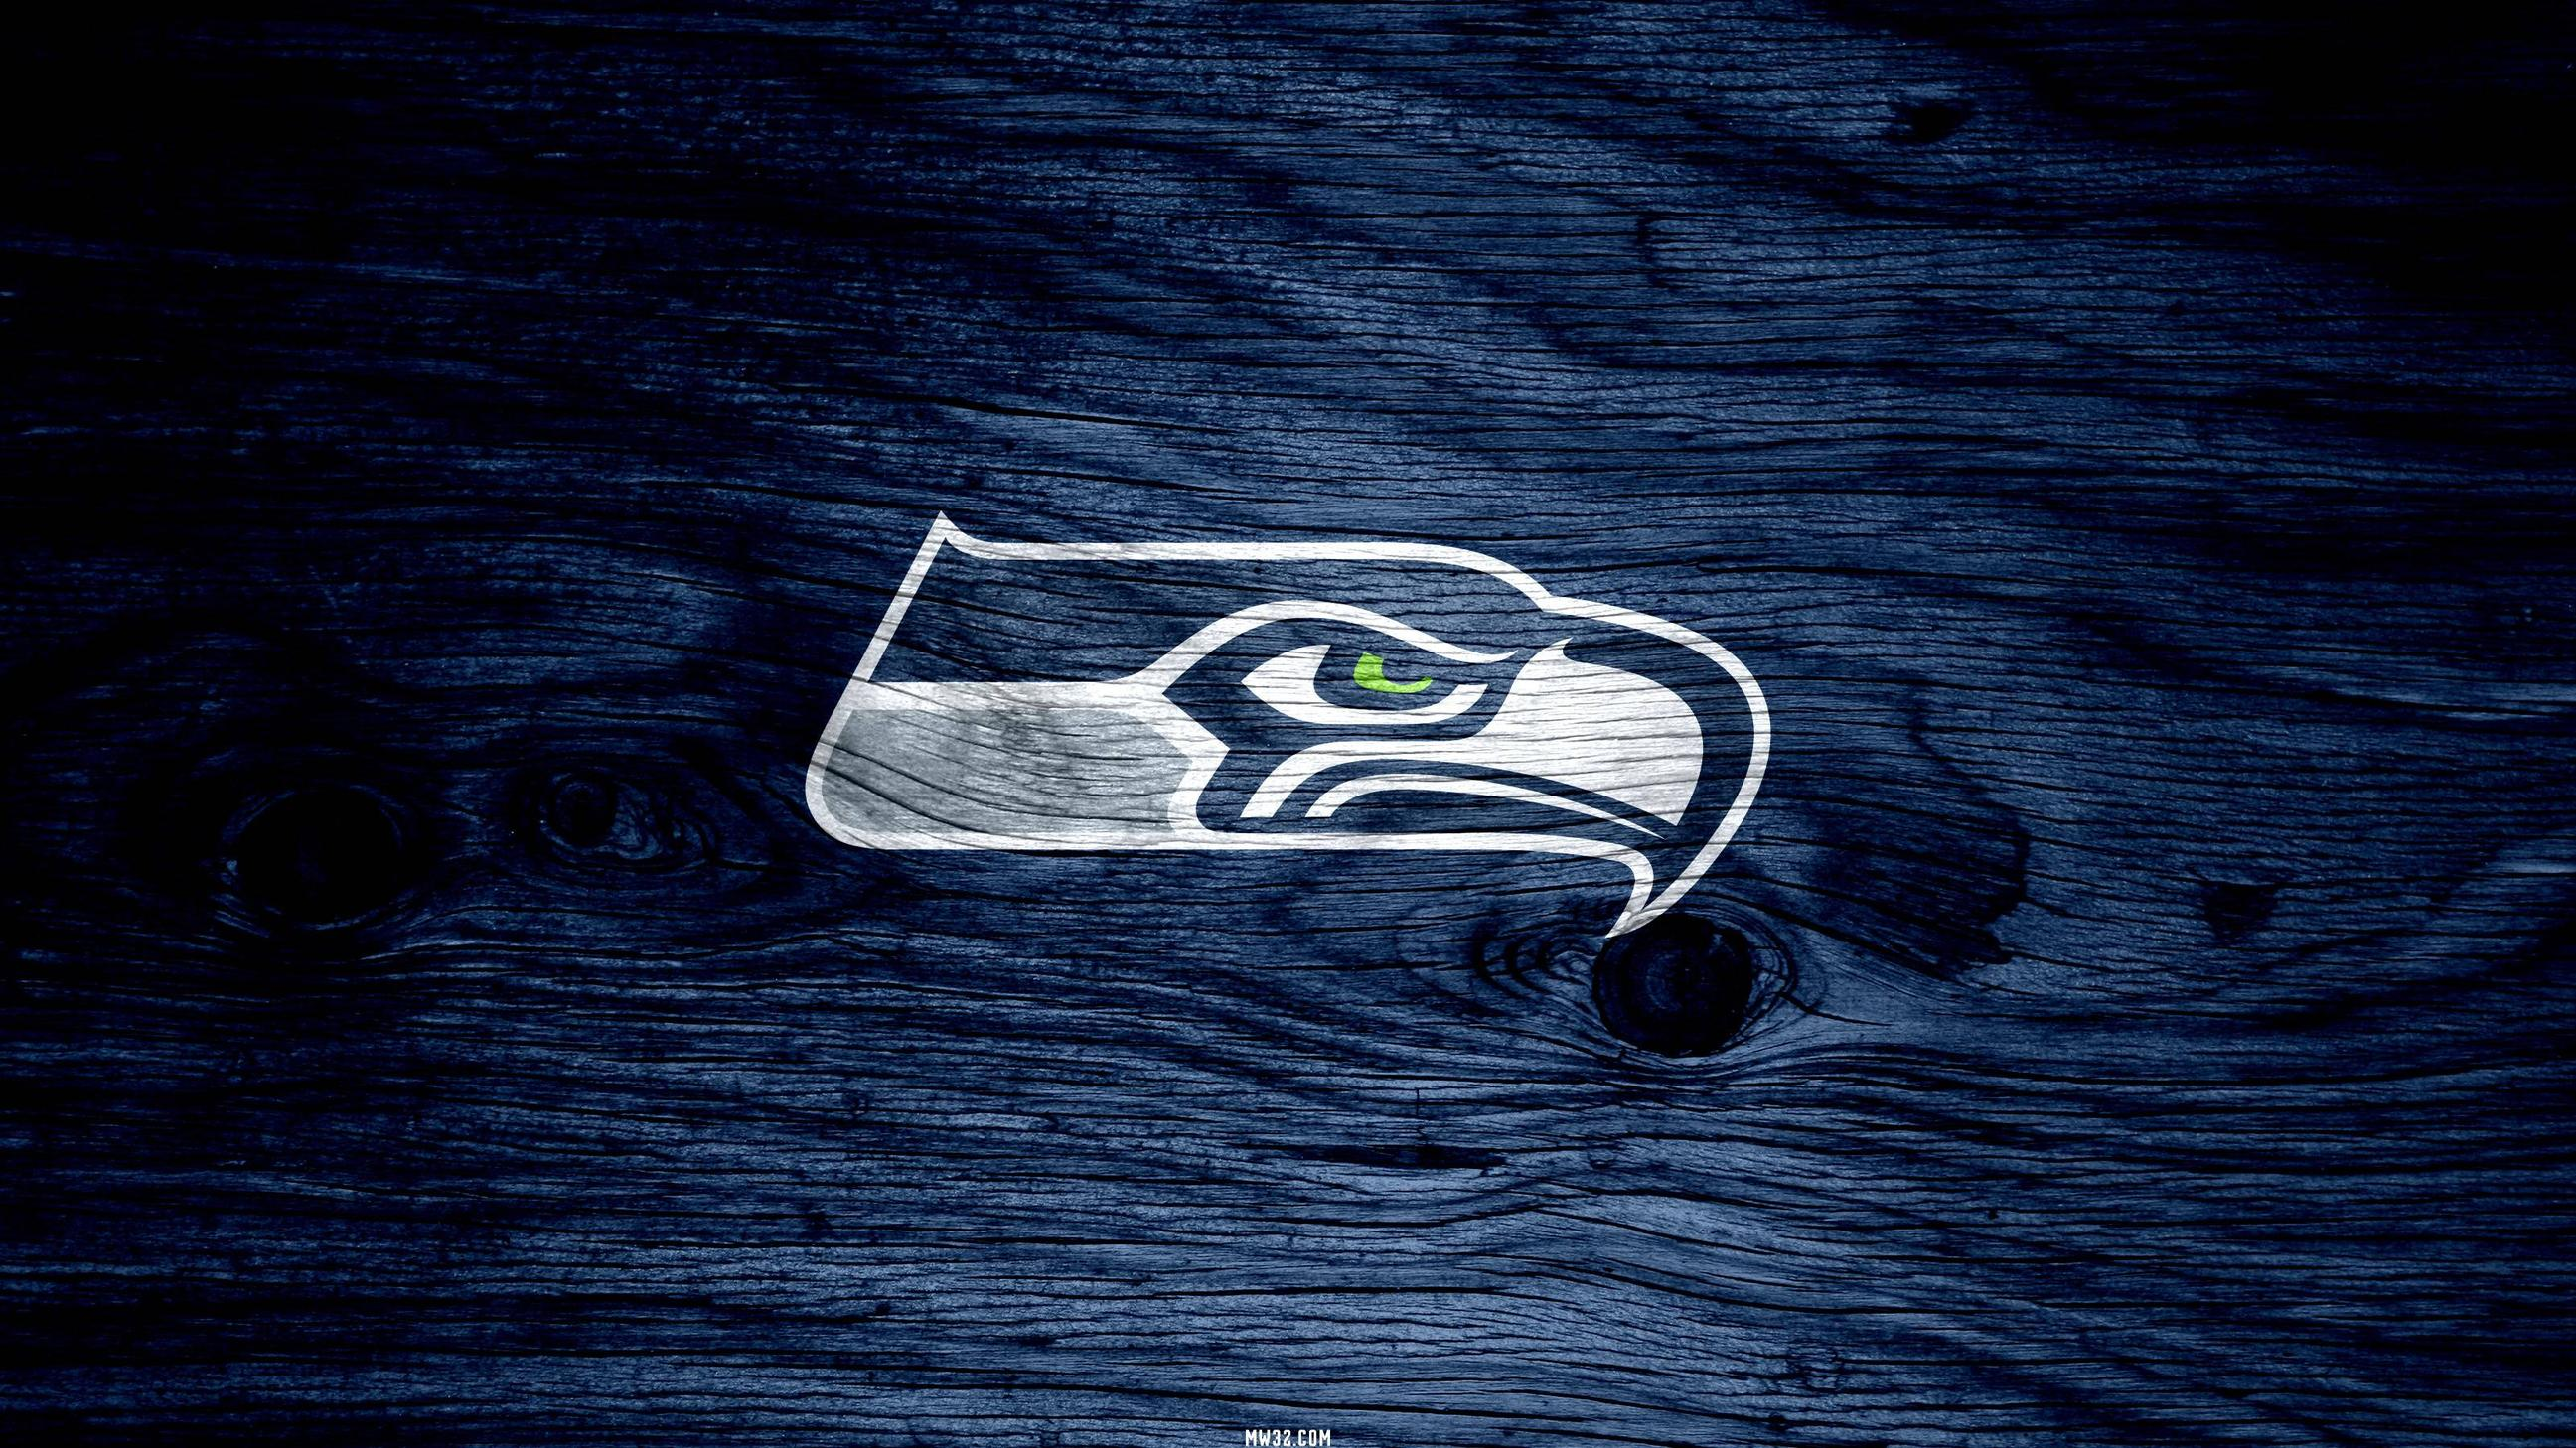 Seattle Seahawks Wallpaper 1920x1080: 292 Seattle Seahawks HD Wallpapers